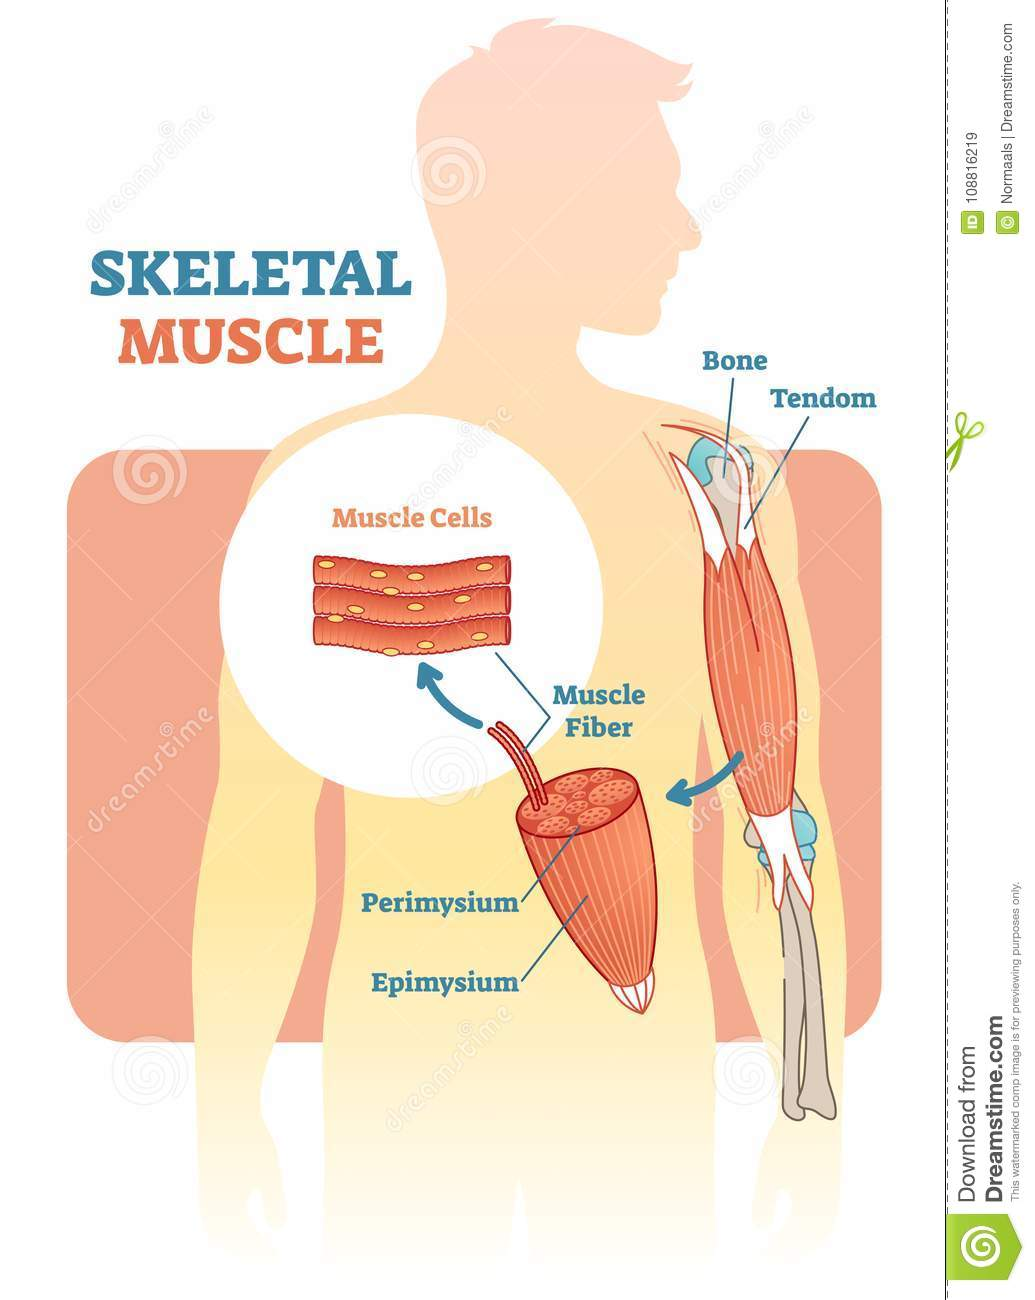 hand muscles diagram active directory visio skeletal muscle vector illustration anatomical